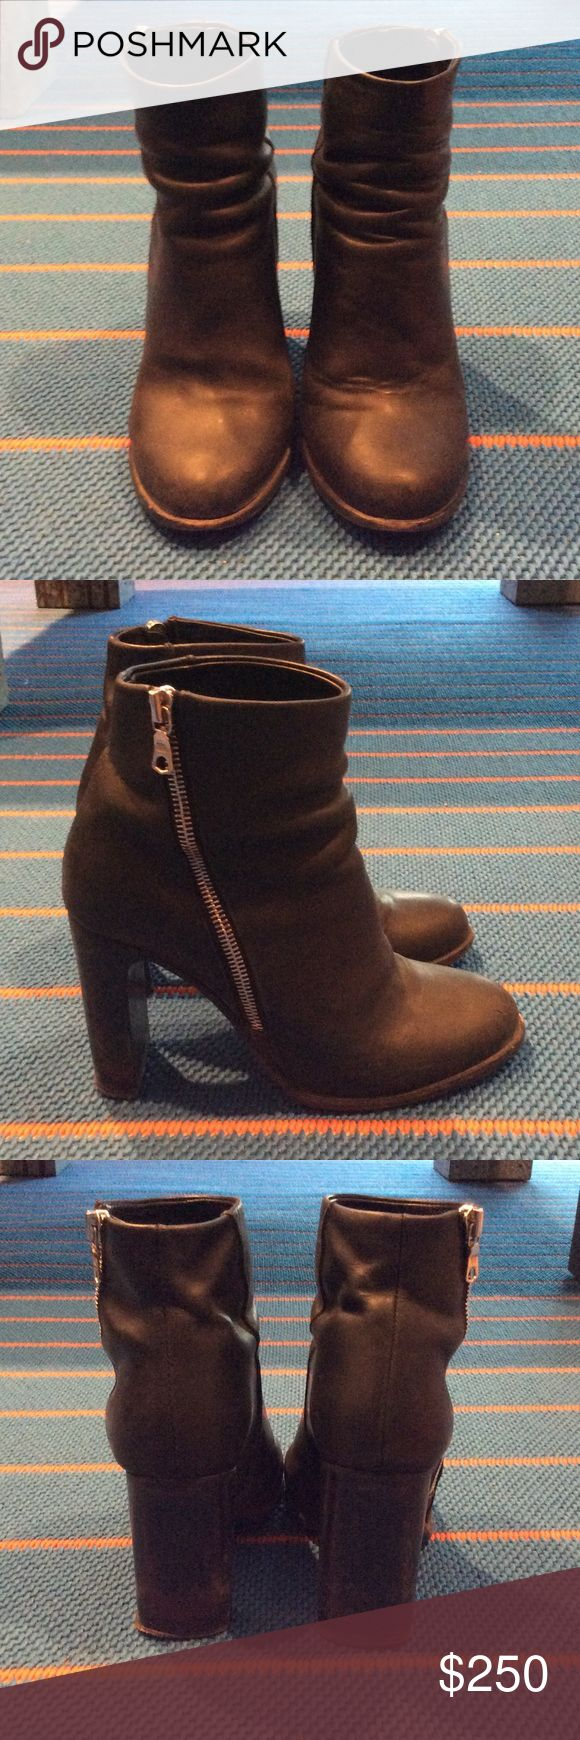 Rag and Bone Black Bootie Get ready for winter in this perfect bootie to take you from day into night. Pair with jeans for brunch and switch into your fav little black dress for a chic New York City look. Show signs of damage as pictured. Heel needs an easy replacement. rag & bone Shoes Ankle Boots & Booties